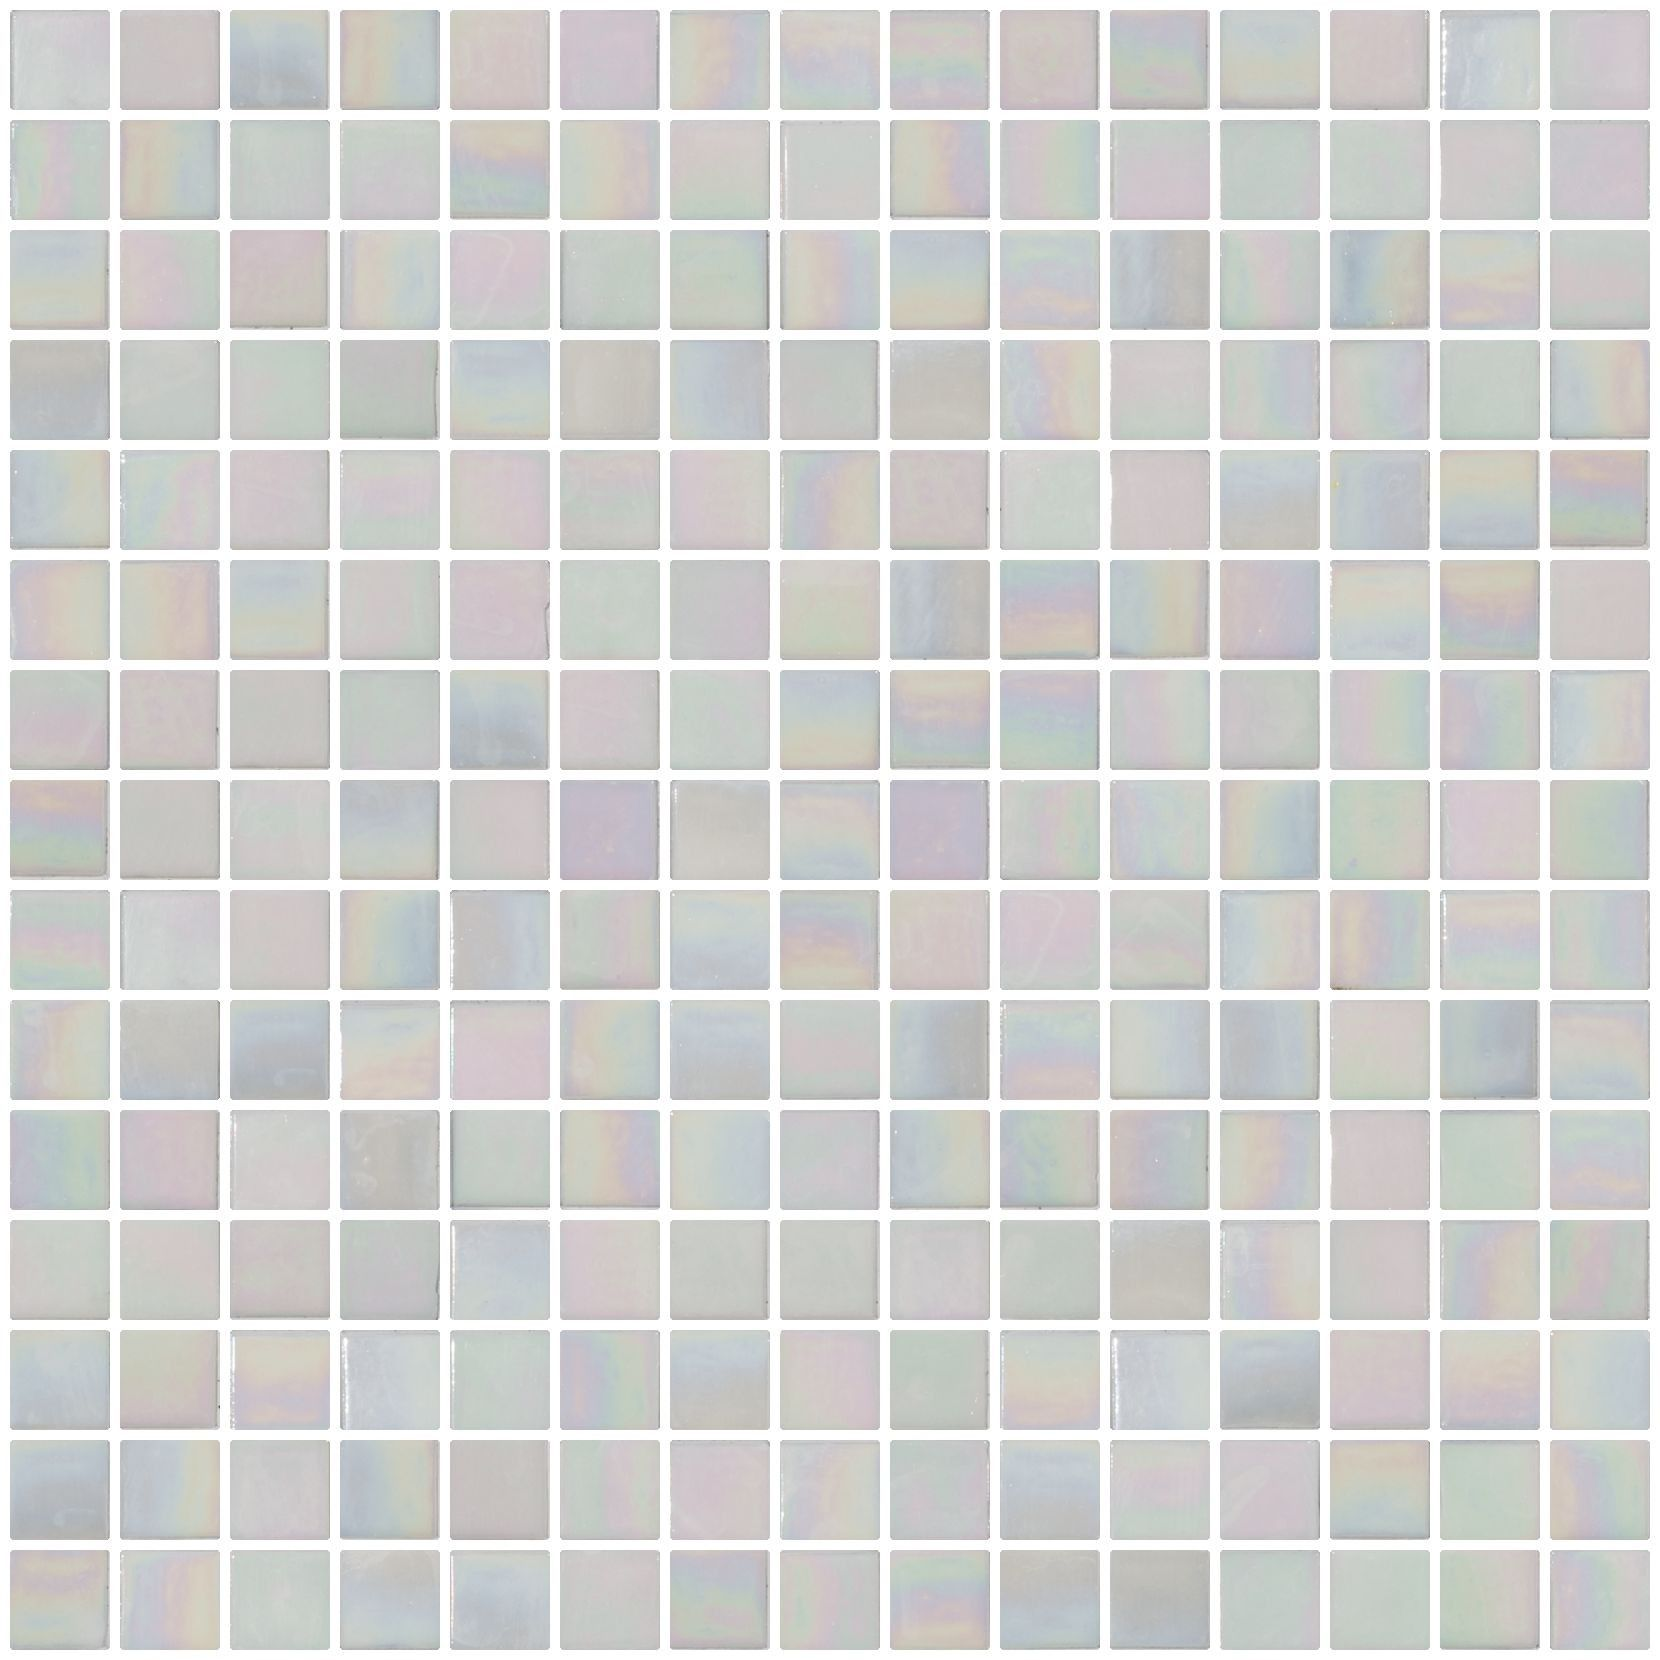 Glass Tile - 3/4 Inch Mother of Pearl White Iridescent Glass Tile ...